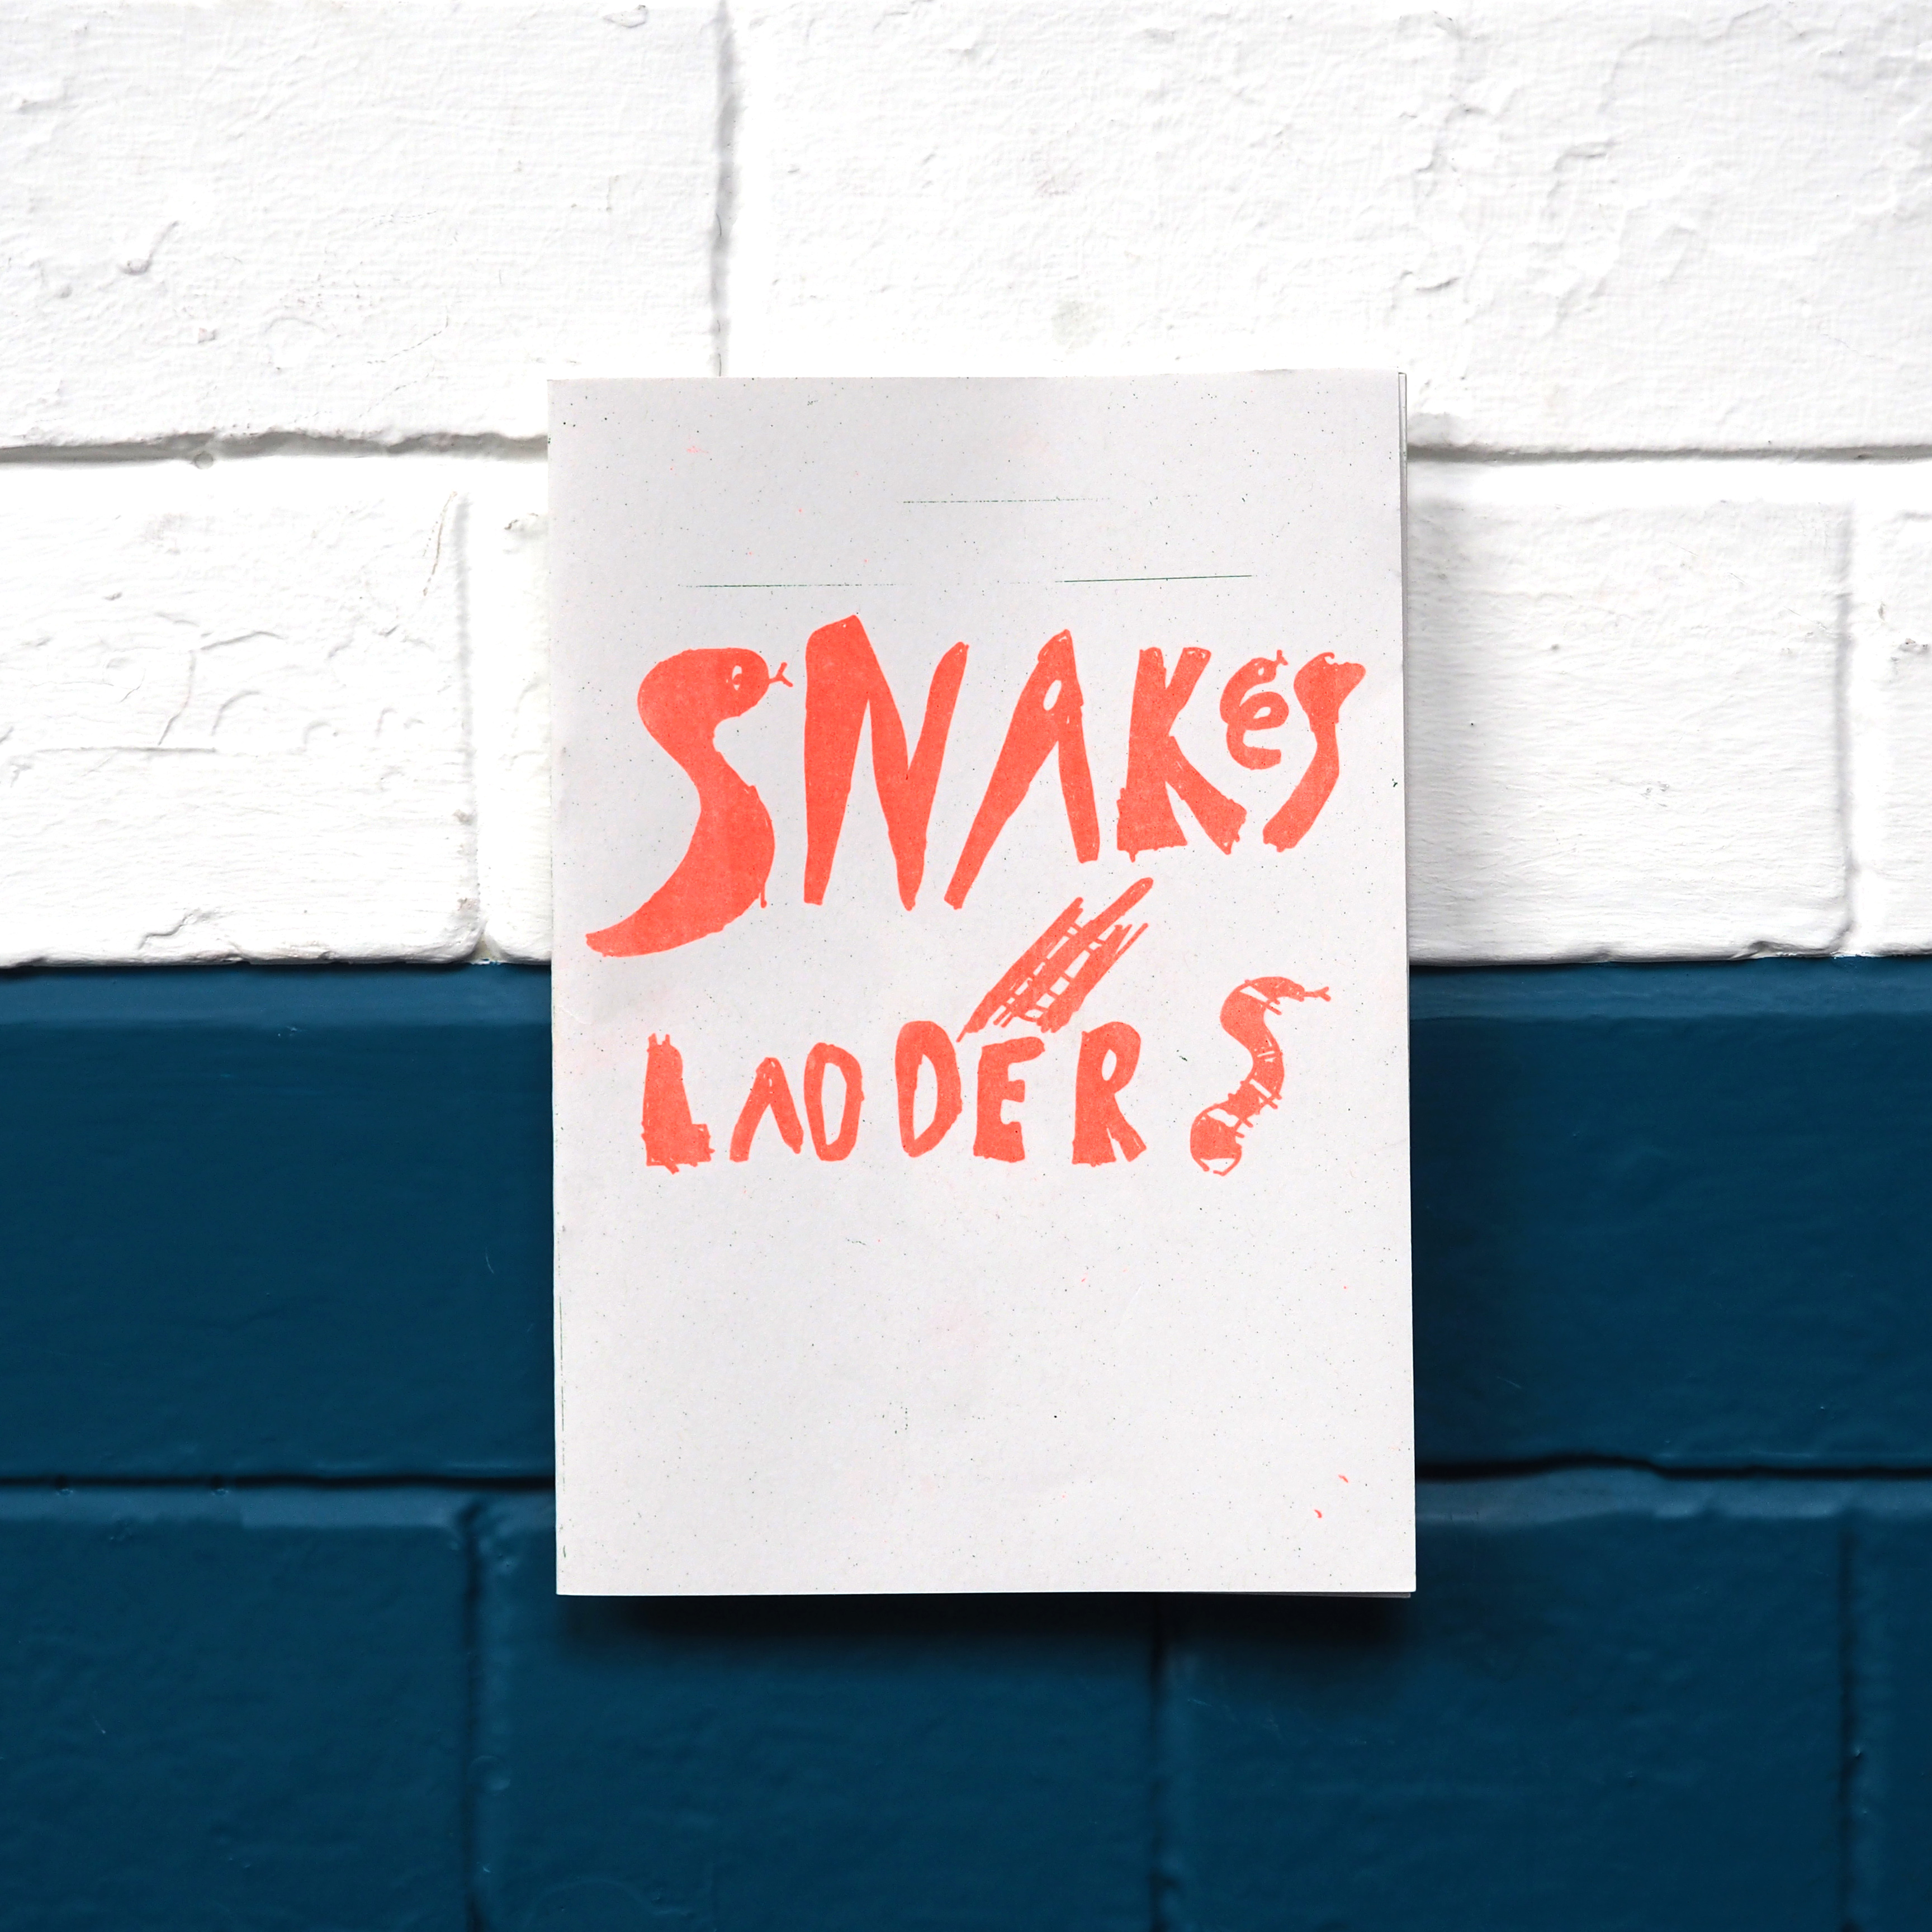 Snakes and Ladders- Captain Massey